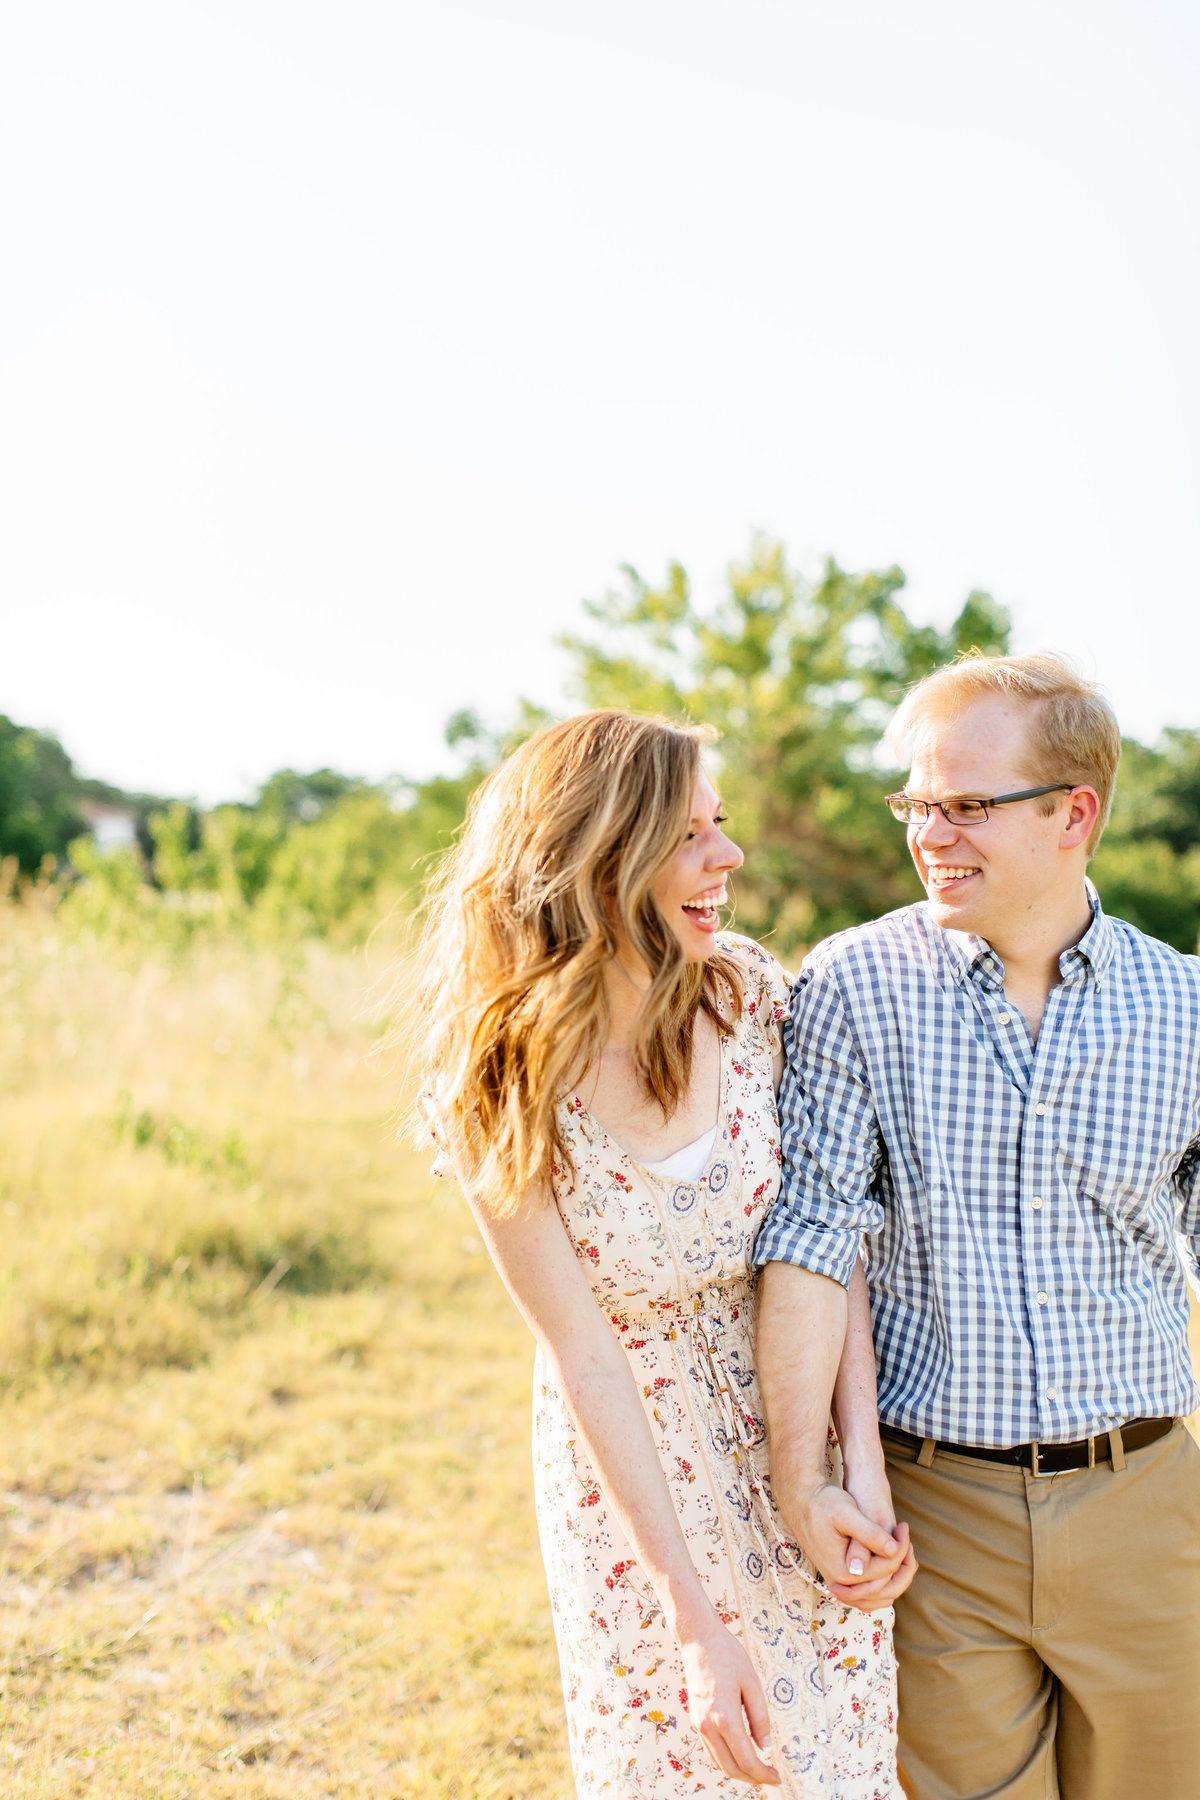 Alexa-Vossler-Photo_Dallas-Engagement-Photographer_Engagement-Photoshoot-at-White-Rock-Lake_Stacey-David-1